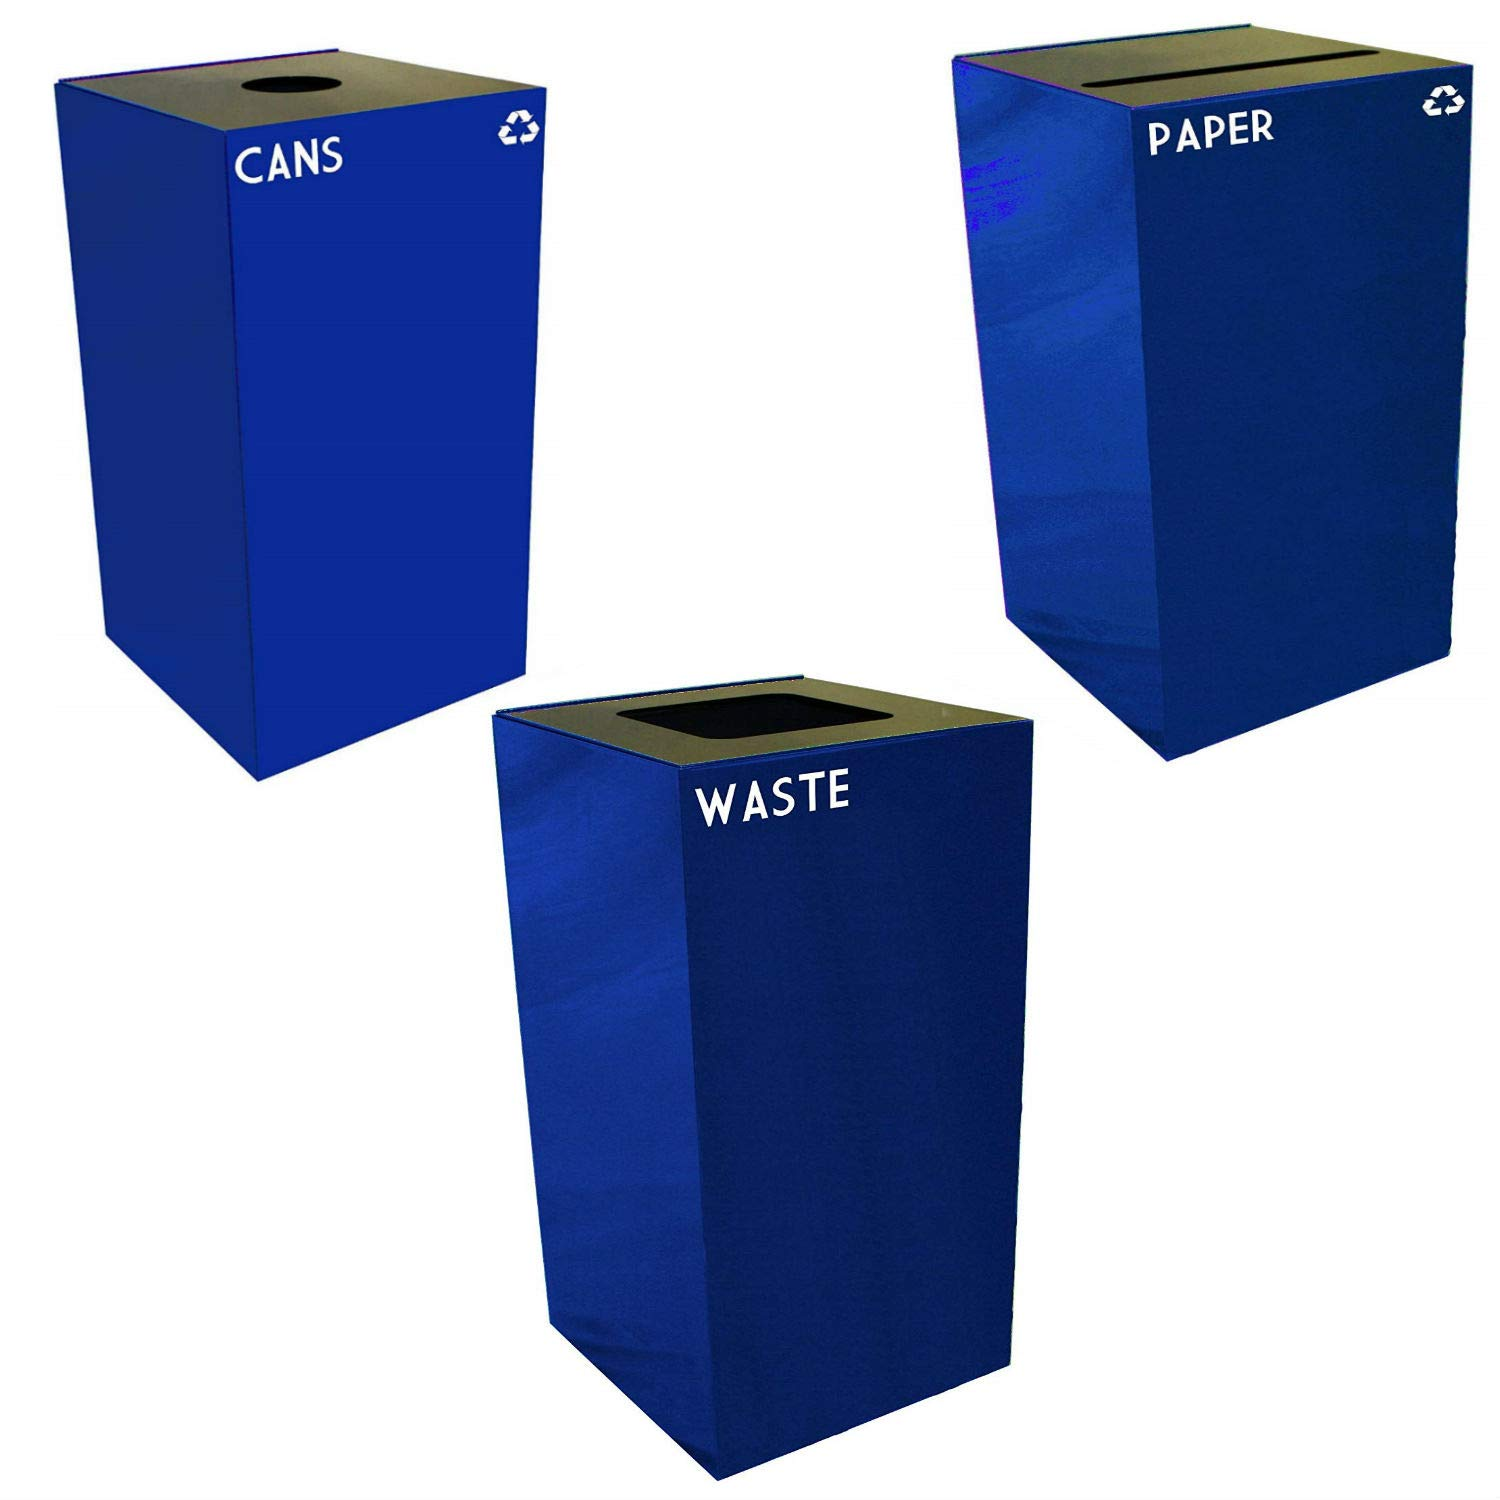 Witt Industries Steel 32-Gallon Geo Cube Recycling Container, Round Opening, Legend Cans, Slot Opening, Legend Newspaper and Square Opening, Legend Waste Square, Blue.